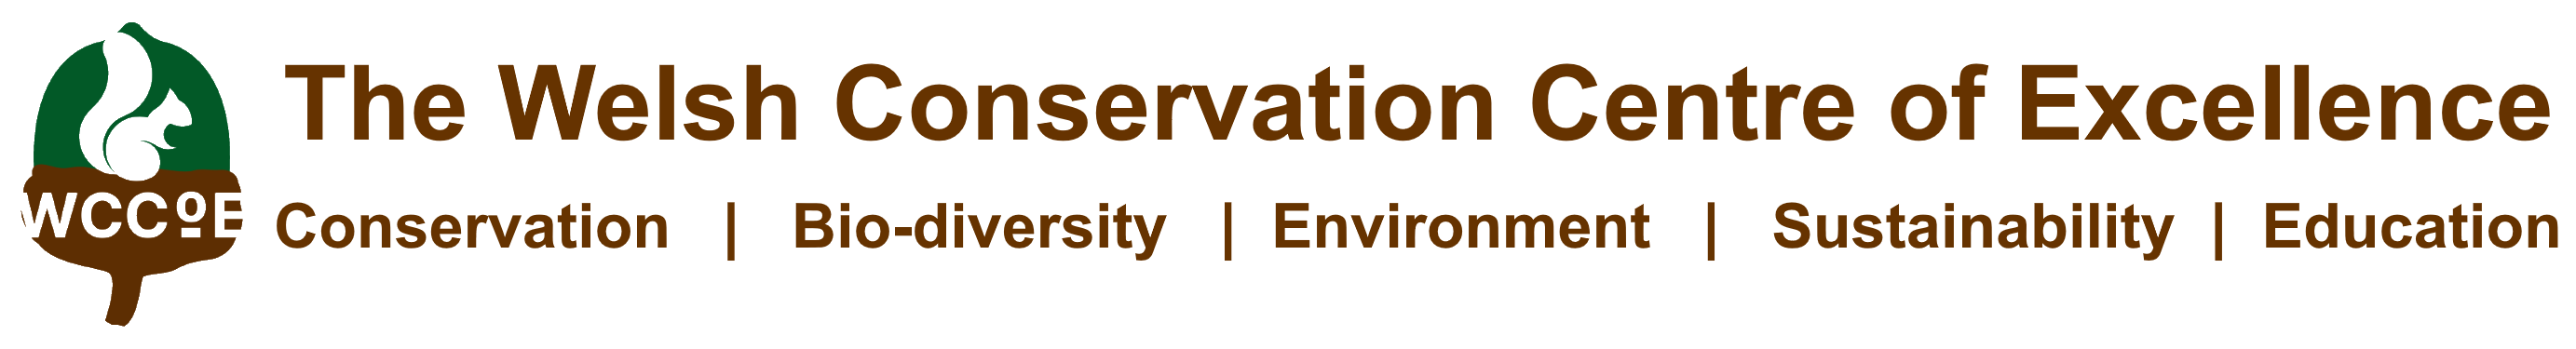 Welsh Conservation Centre of Excellence